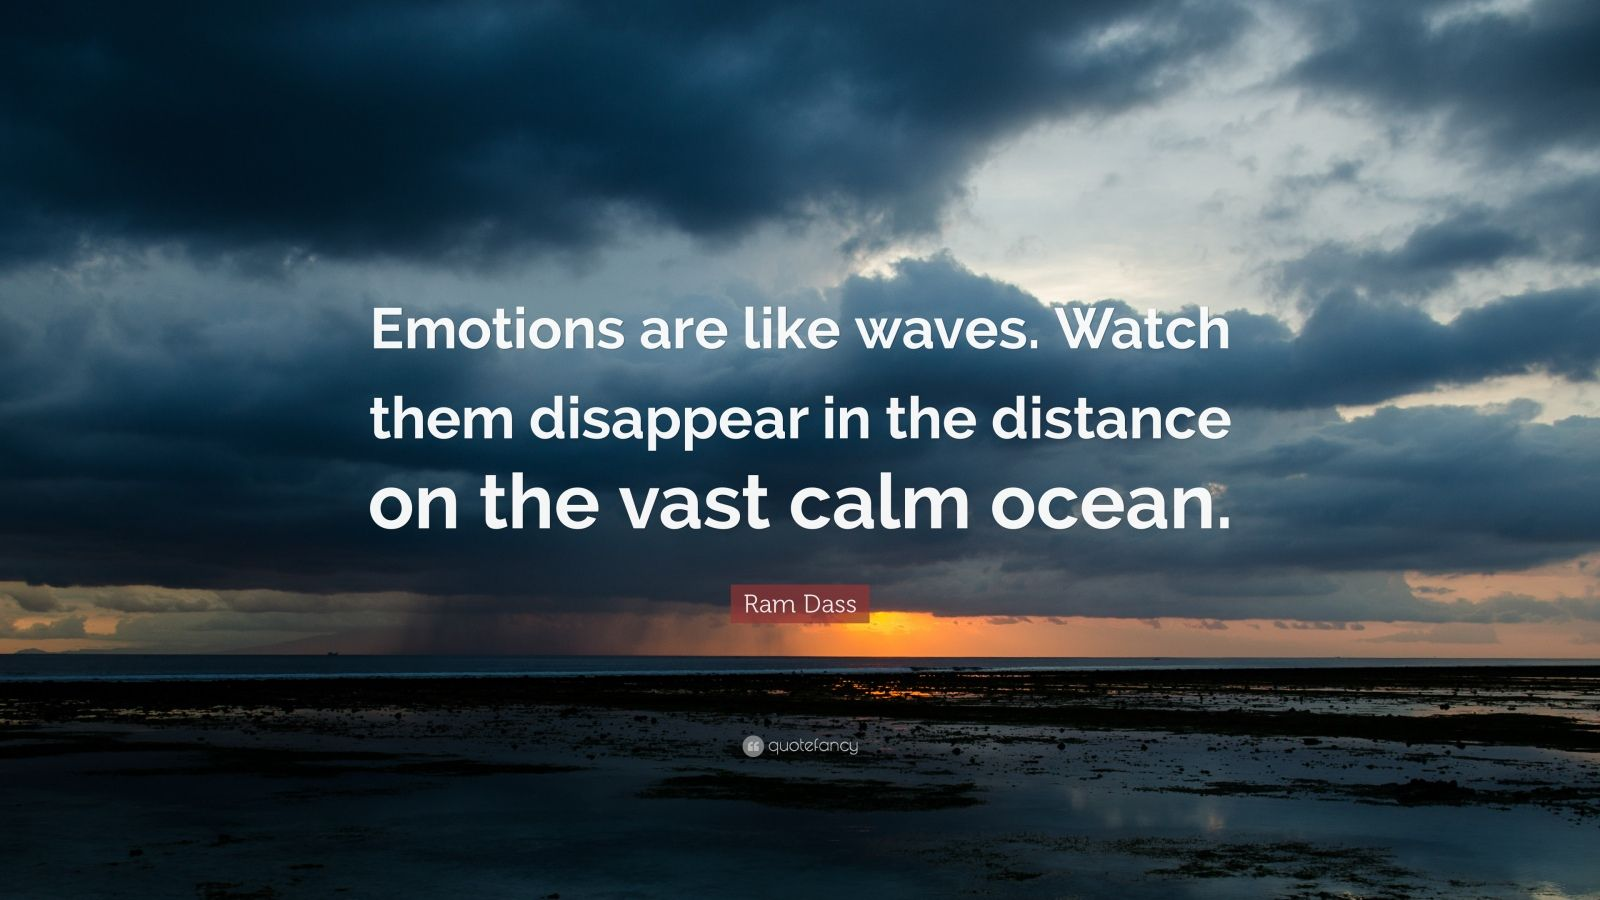 Inspiration Quote Wallpapers Hd Ram Dass Quote Emotions Are Like Waves Watch Them